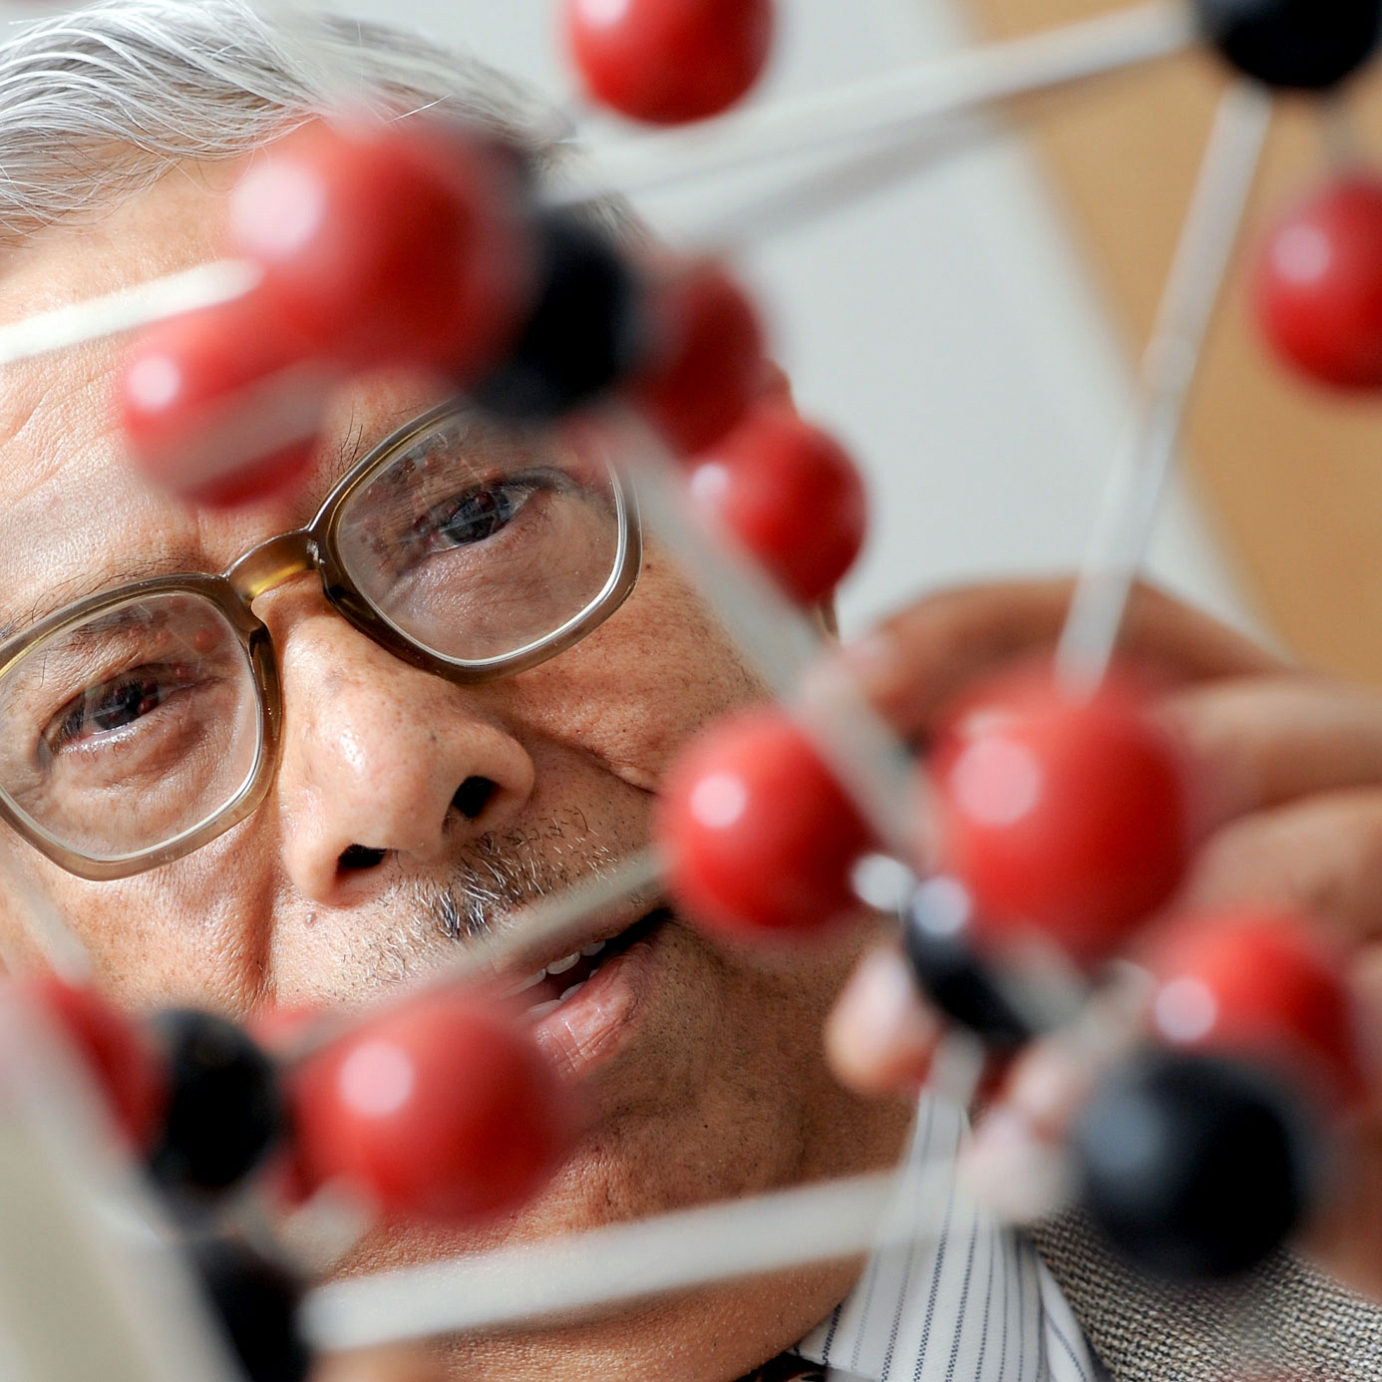 Man with molecular structure model